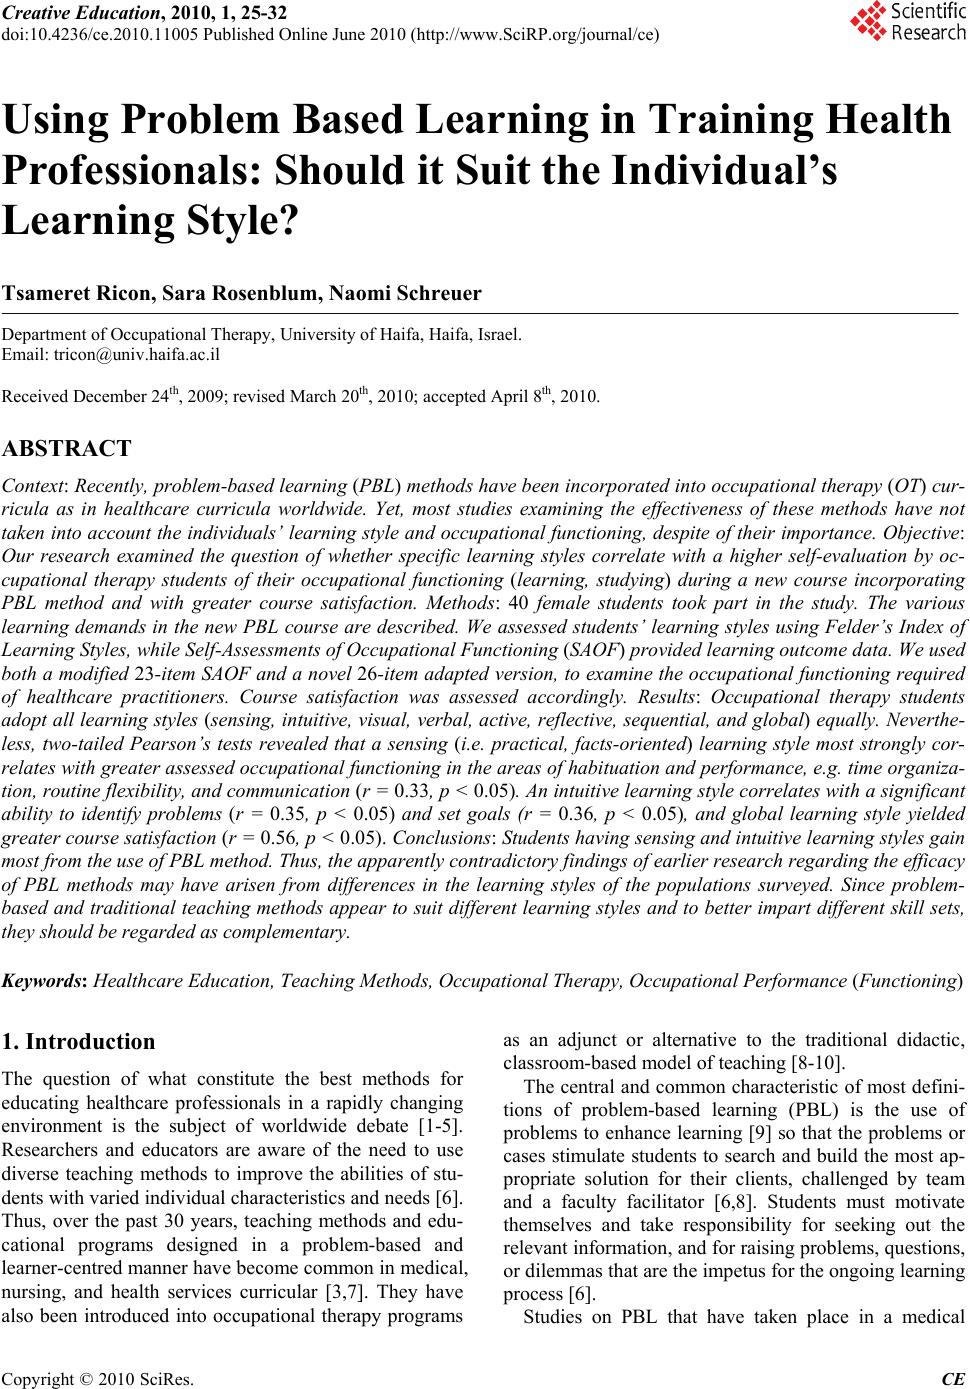 problem based learning research paper